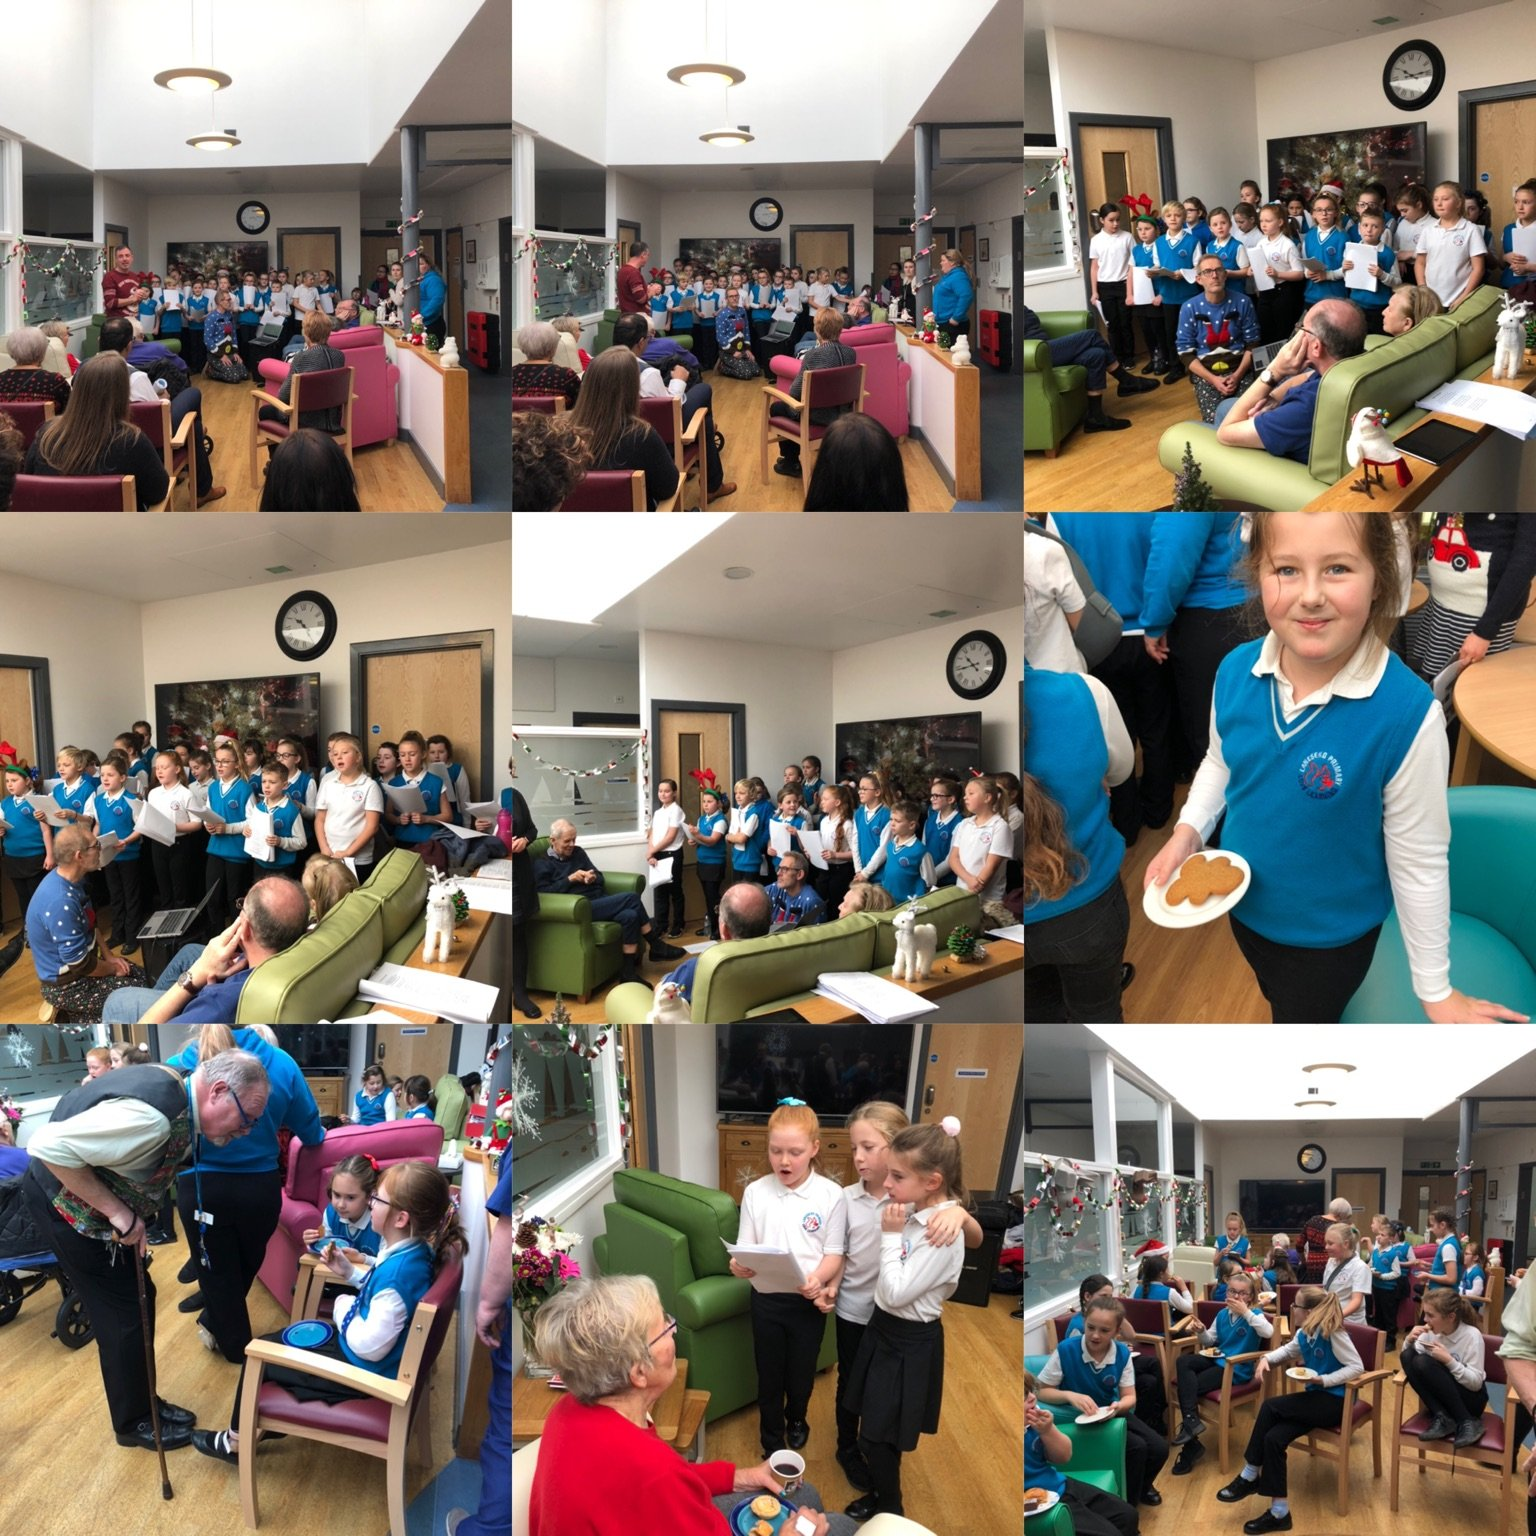 Choir singing at Afton Ward